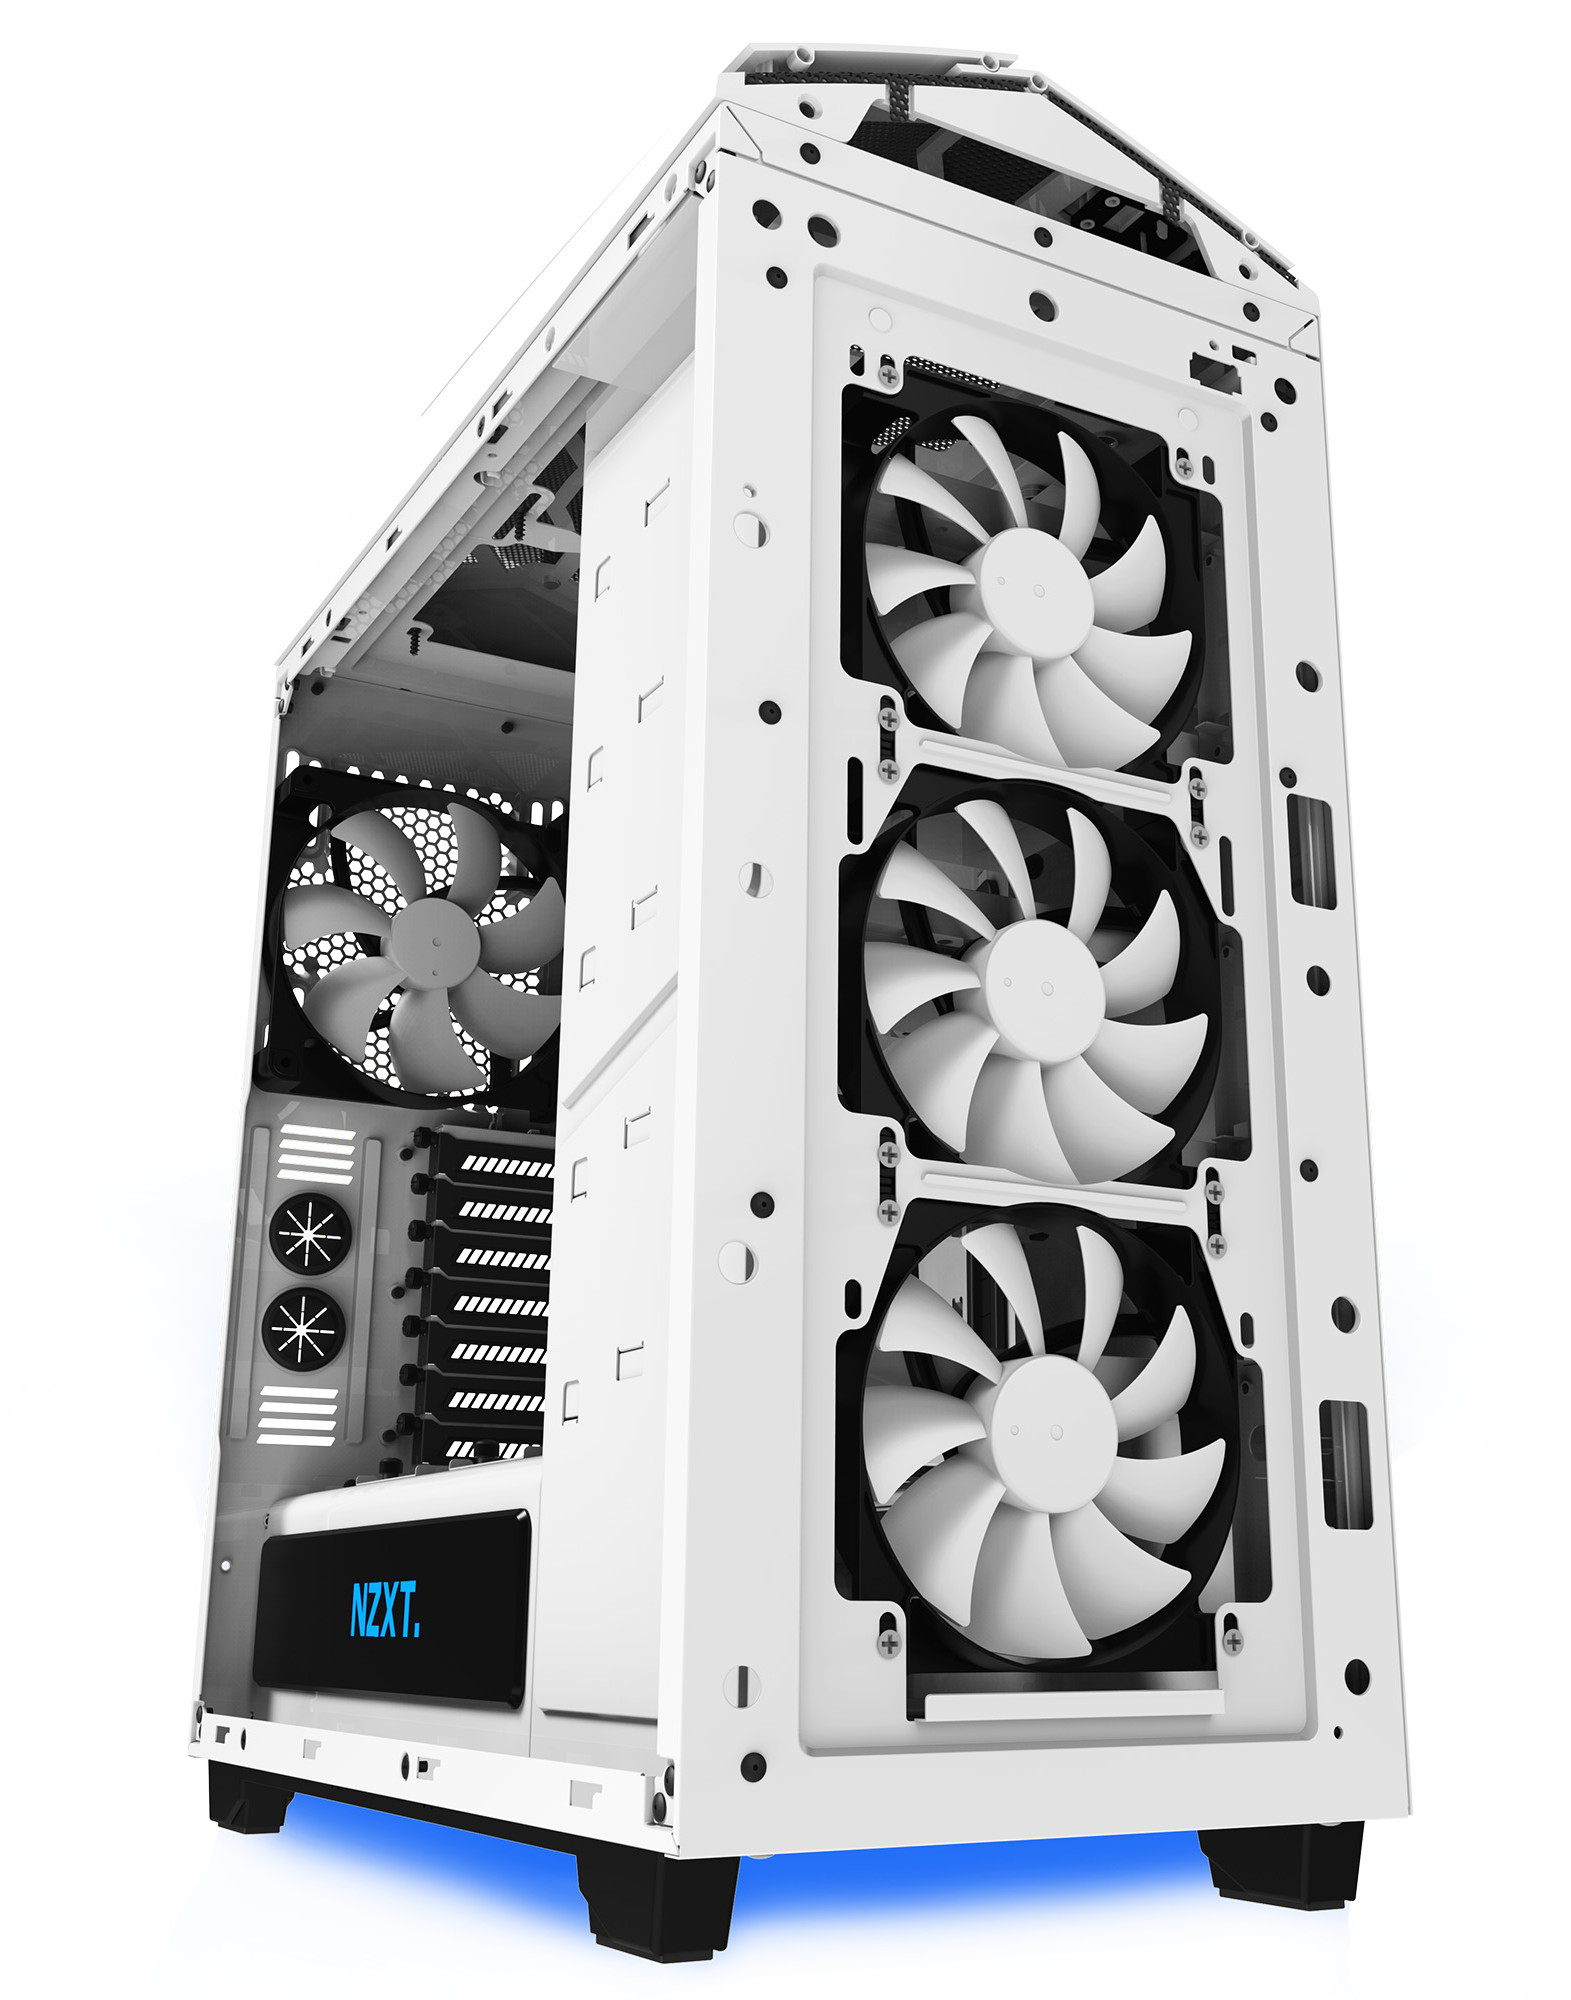 N450-case-white-frontfans